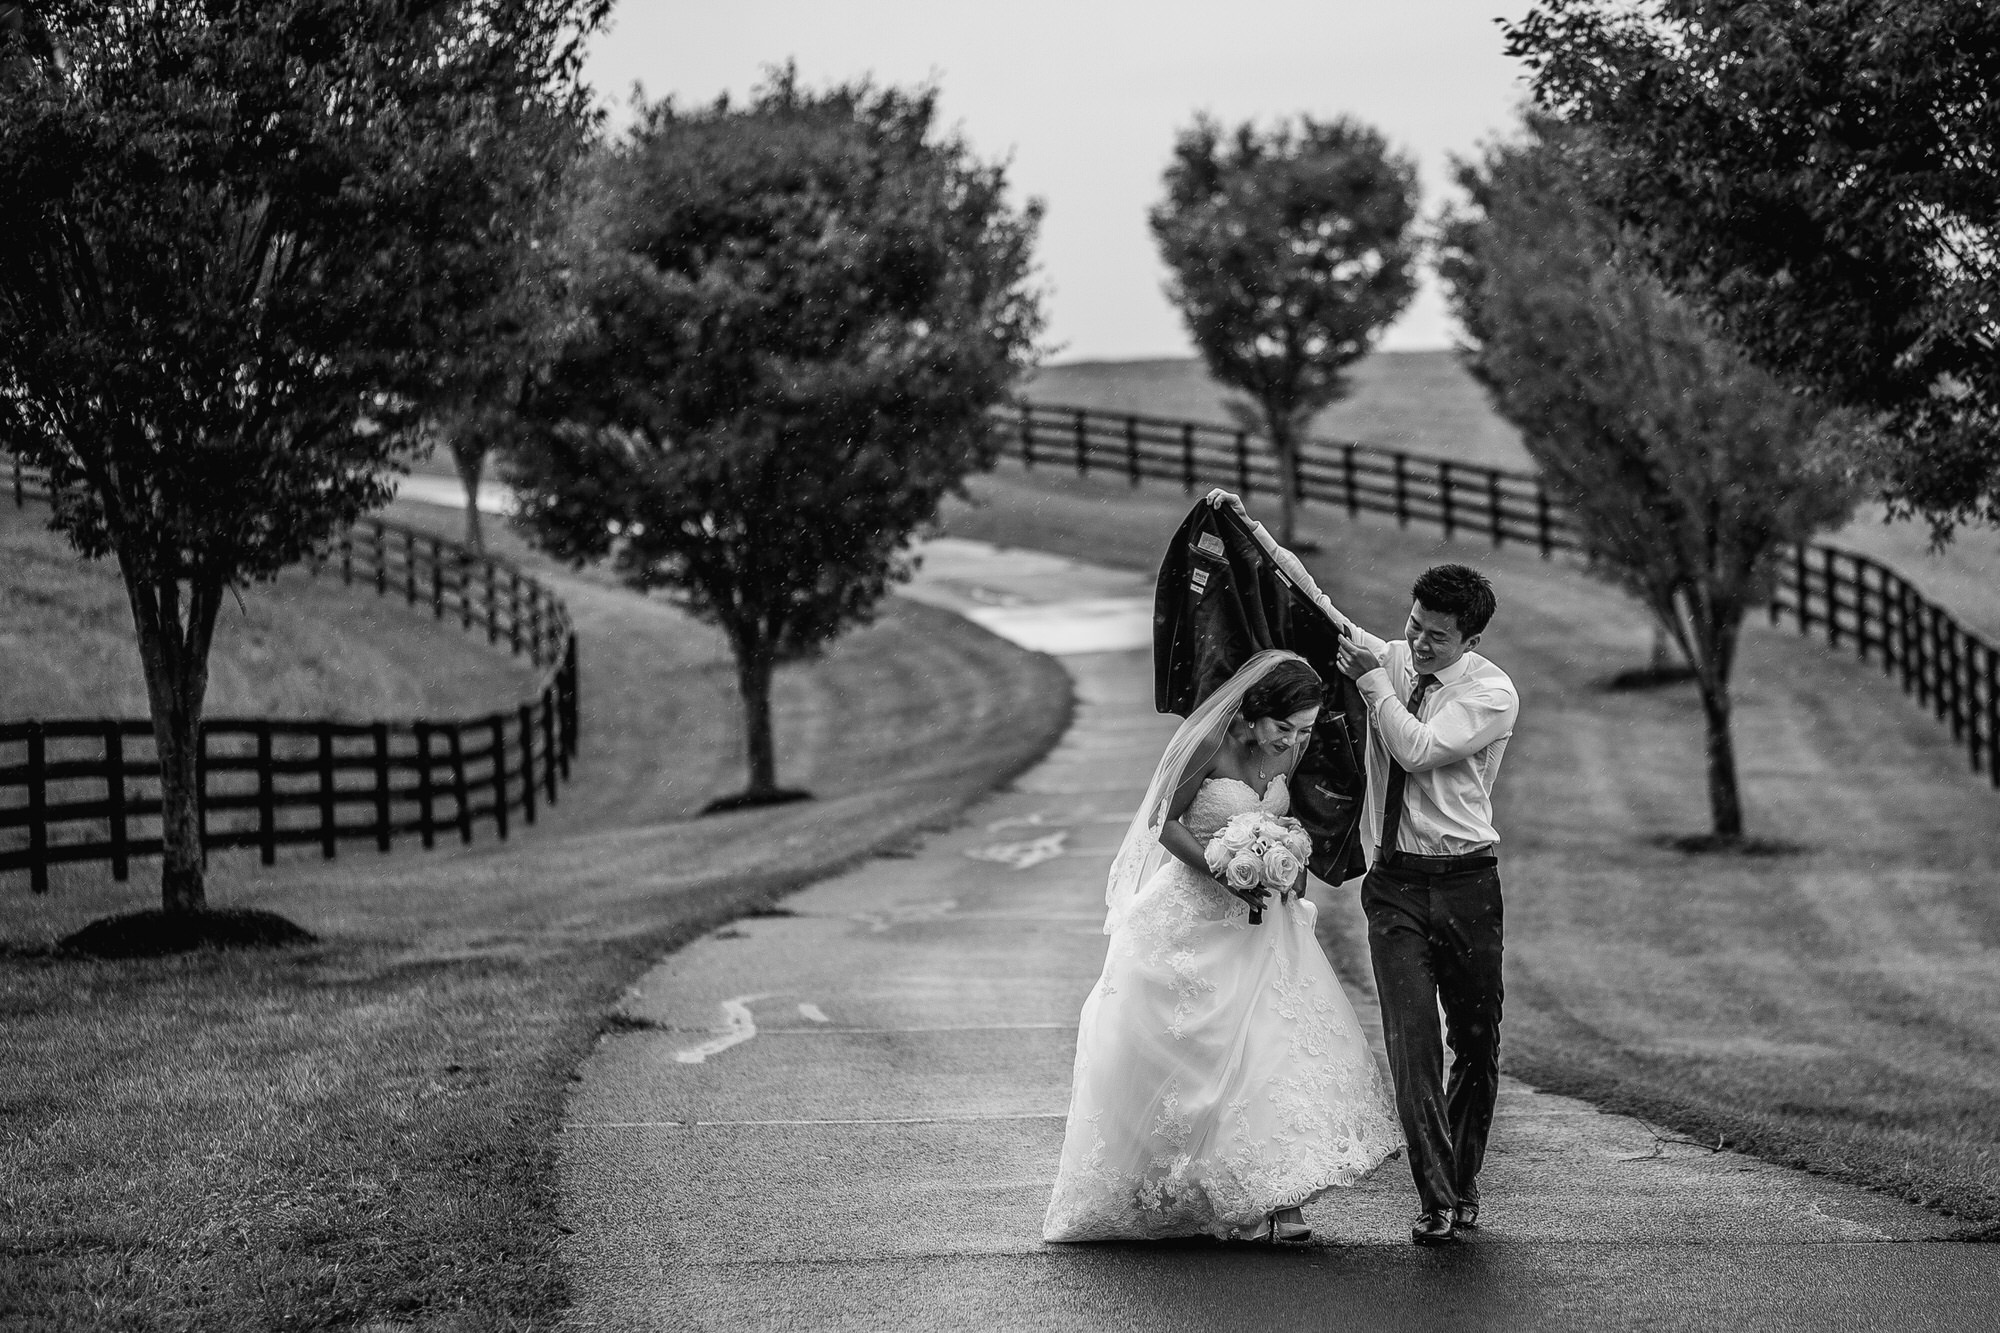 Groom shelters bride with his jacket  - photo by Ken Pak